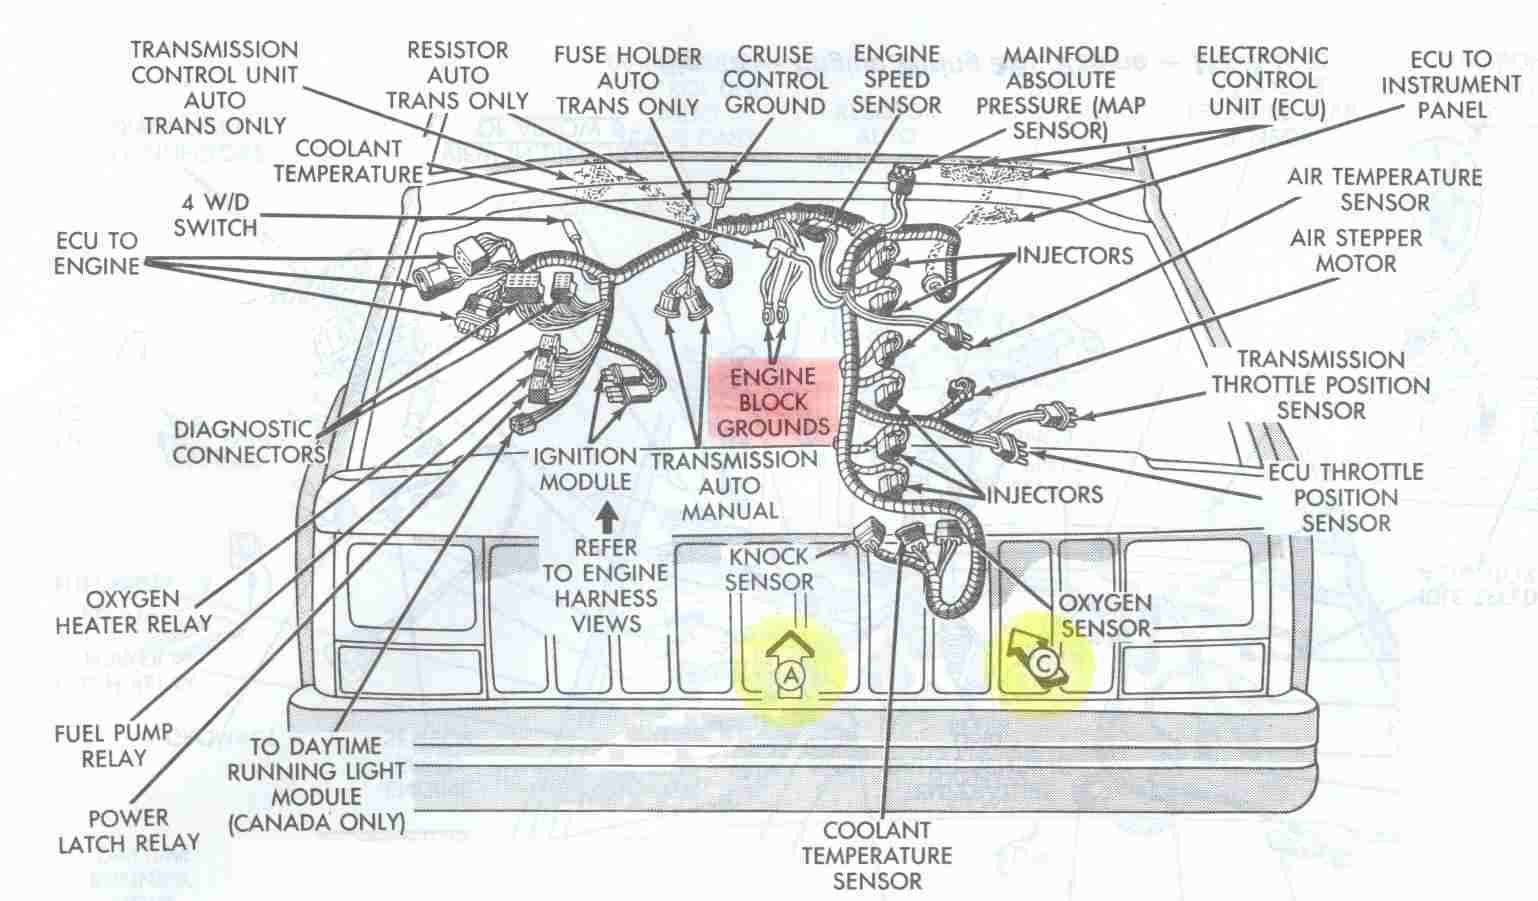 engine bay schematic showing major electrical ground points for 4 0l jeep cherokee engines  [ 1538 x 901 Pixel ]